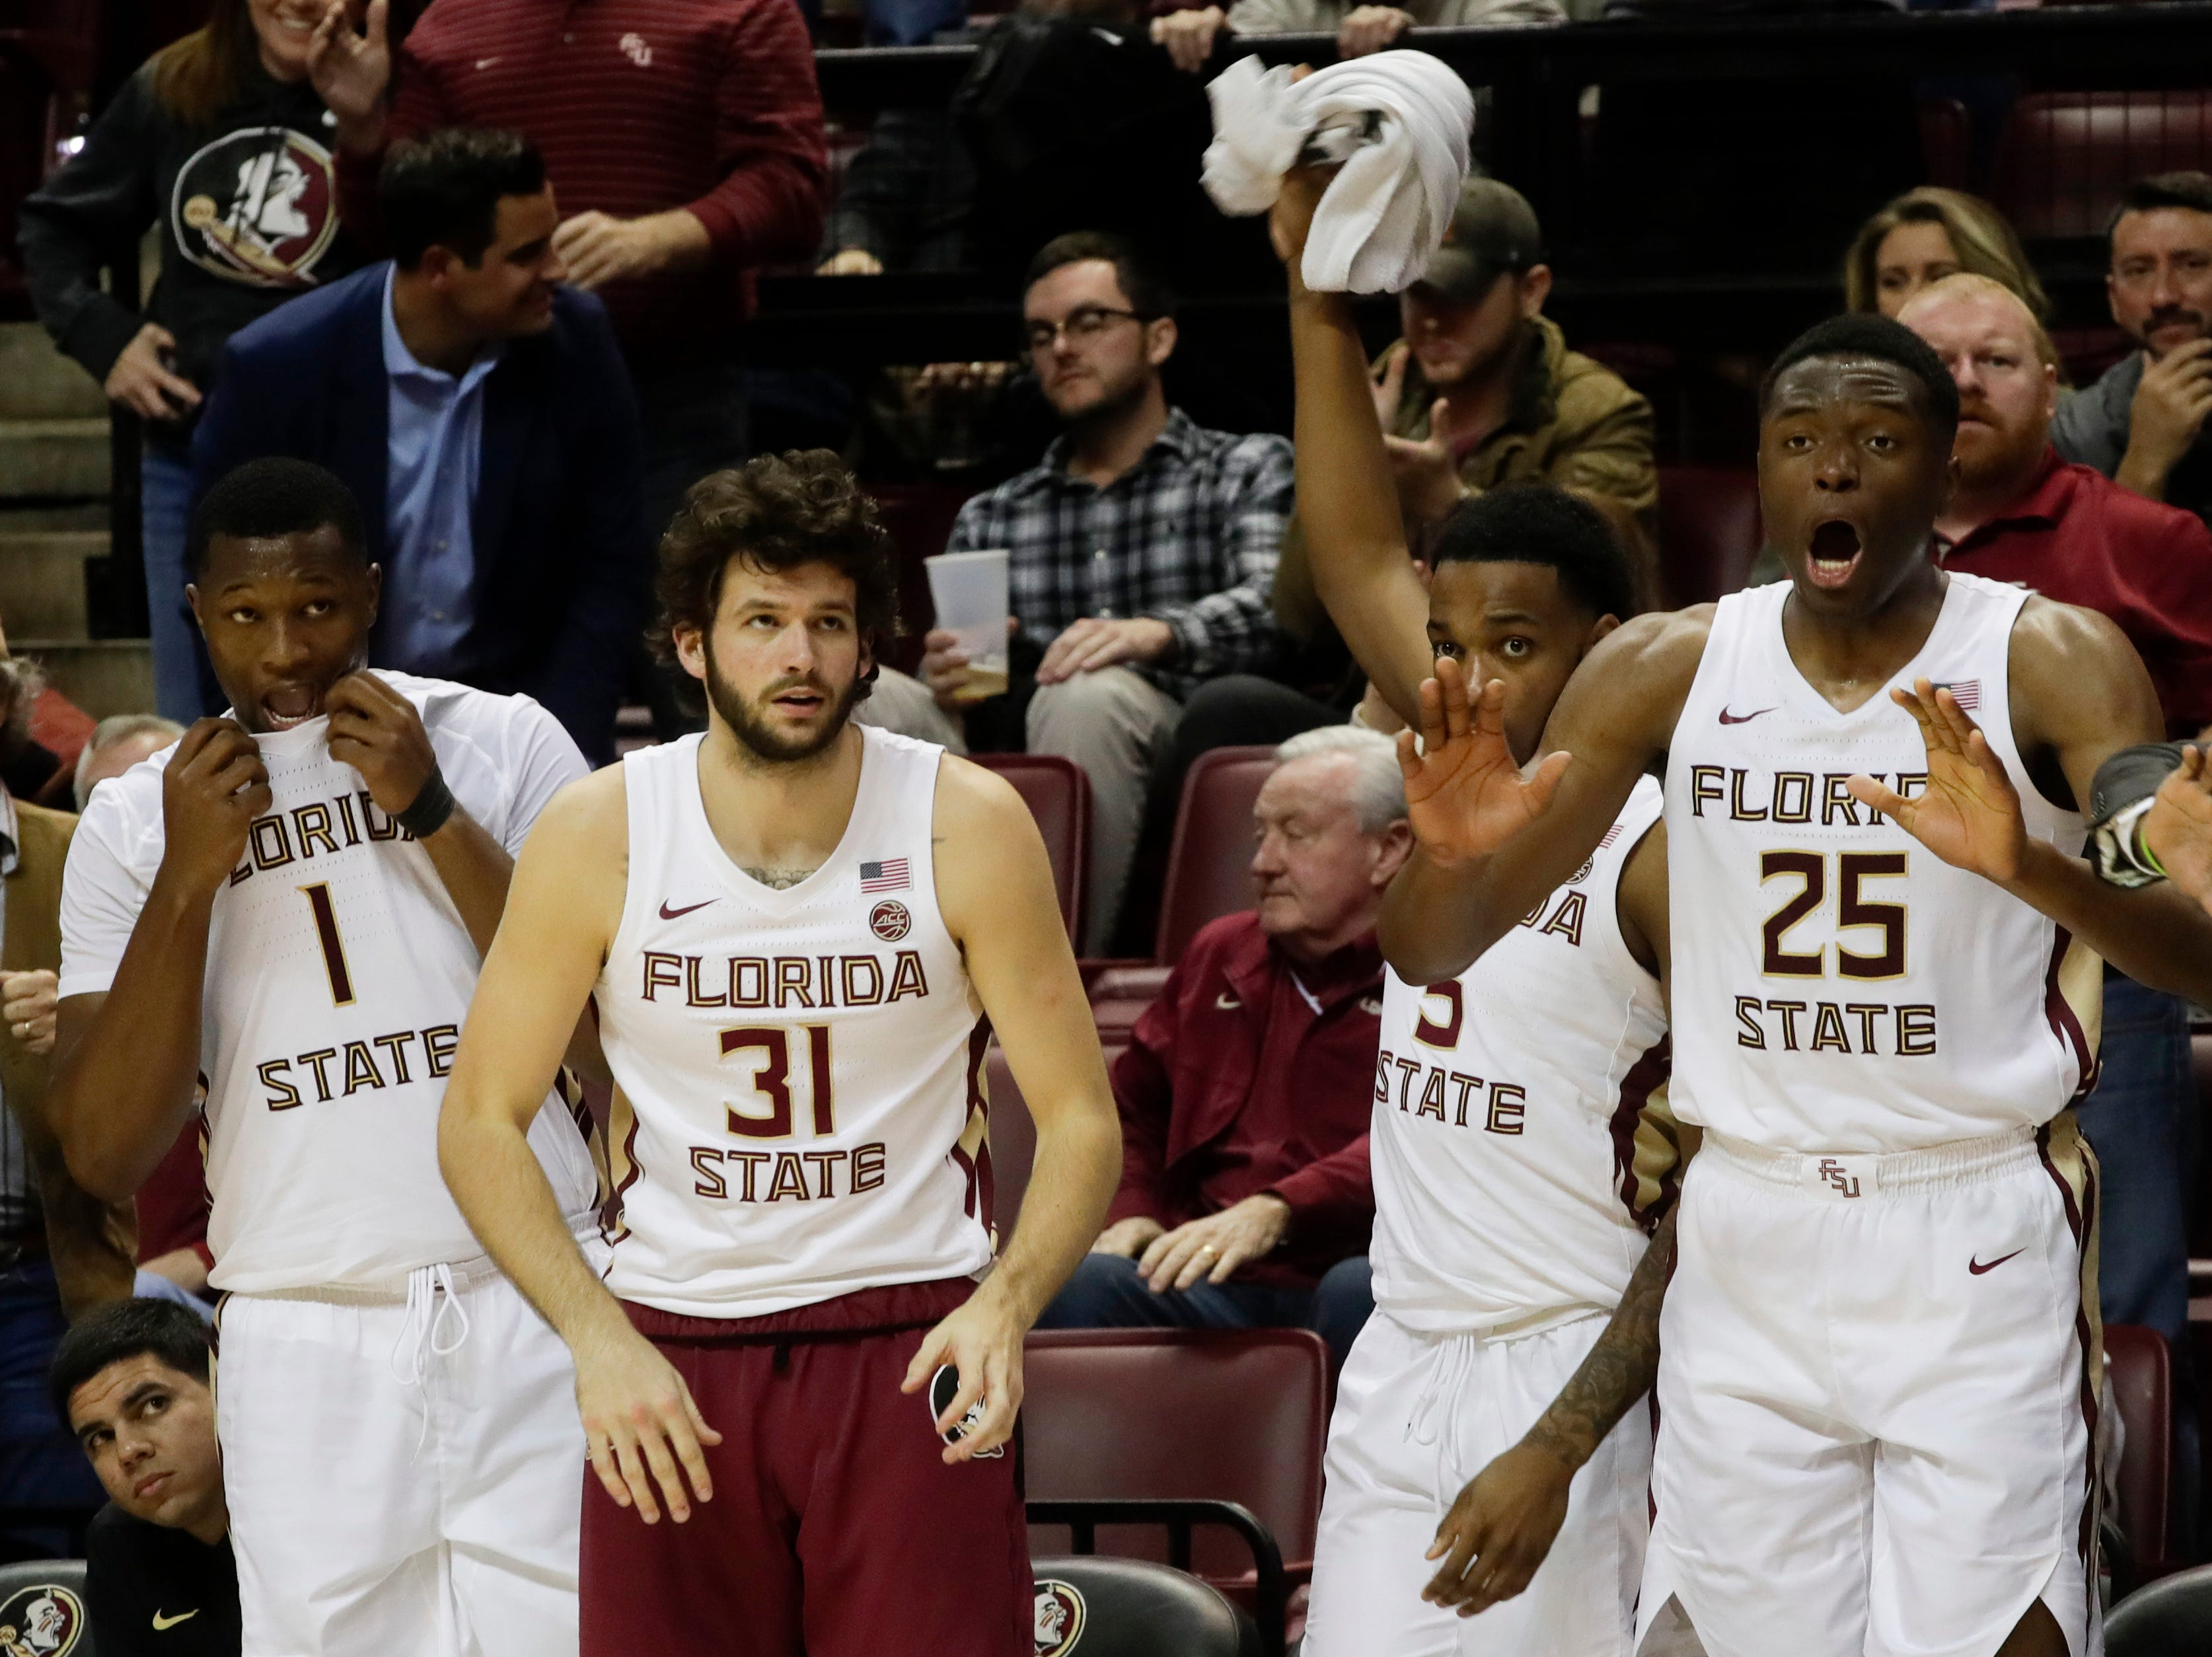 The bench reacts during a game between FSU and University of Miami Wednesday, Jan. 9, 2019.